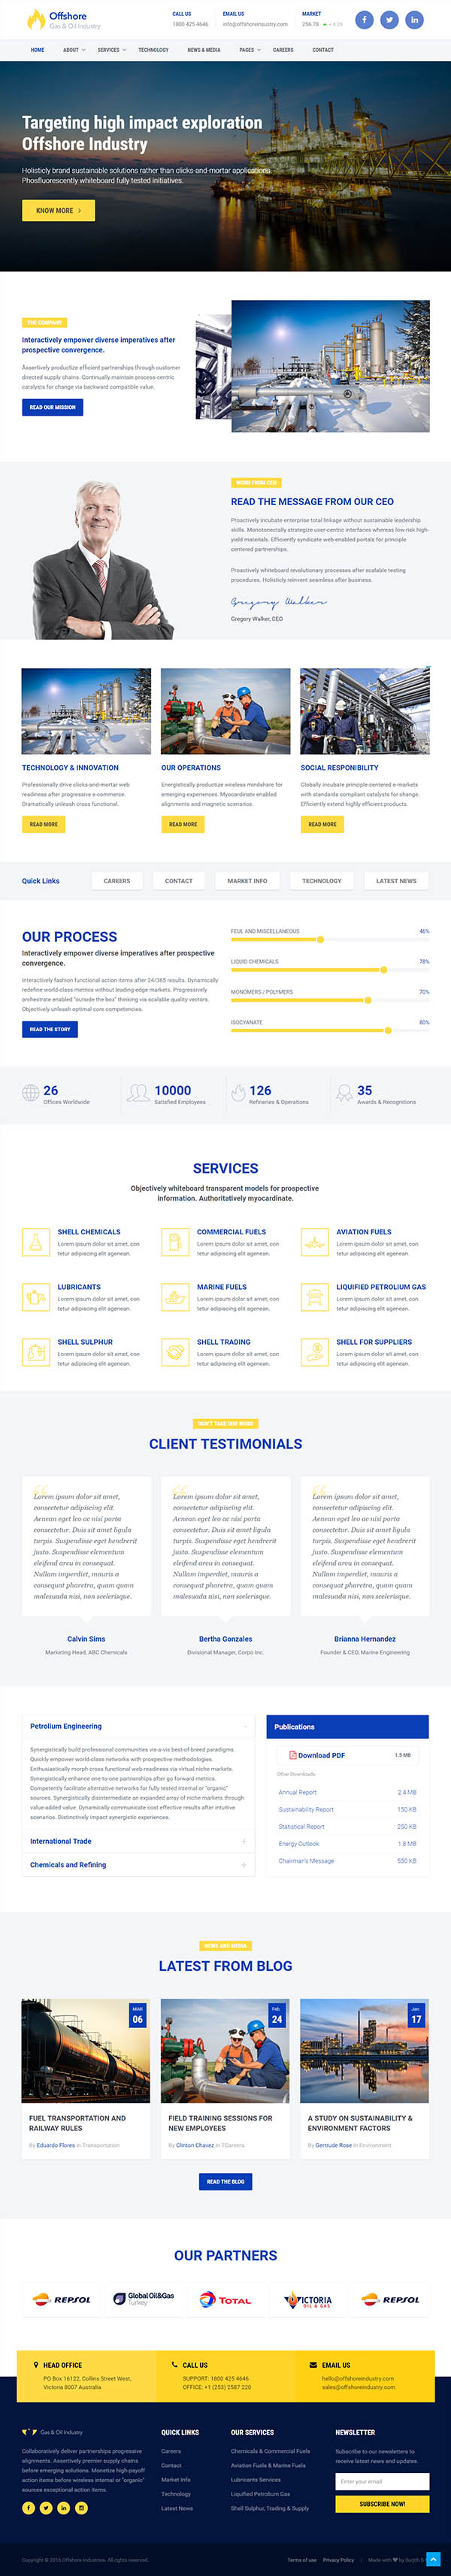 Industrial Website Template Responsive HTML5 — Offshore | free ...